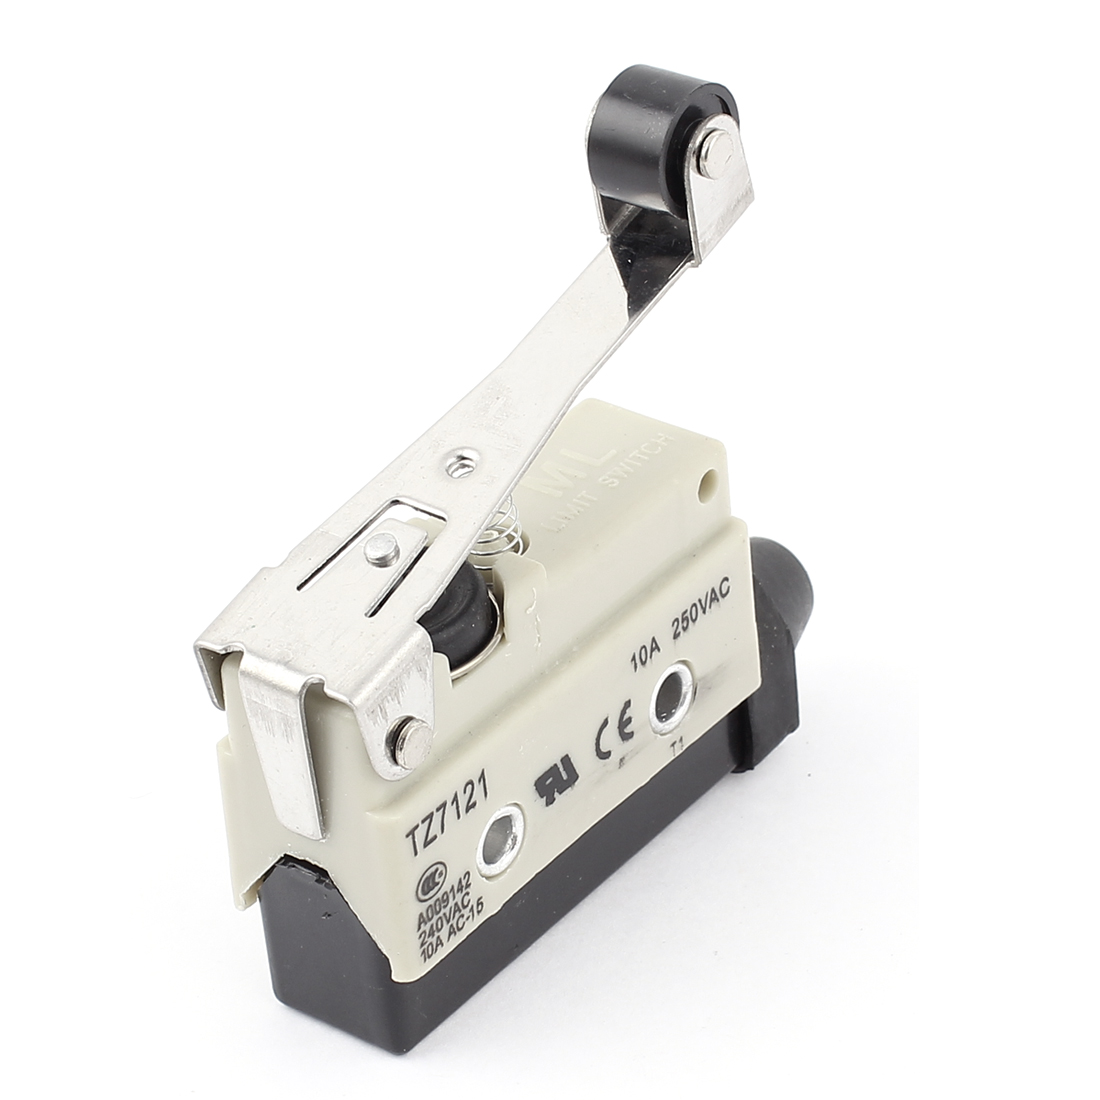 TZ7121 SPDT Momentary Micro Roller Lever Limit Switch AC 250V 10A